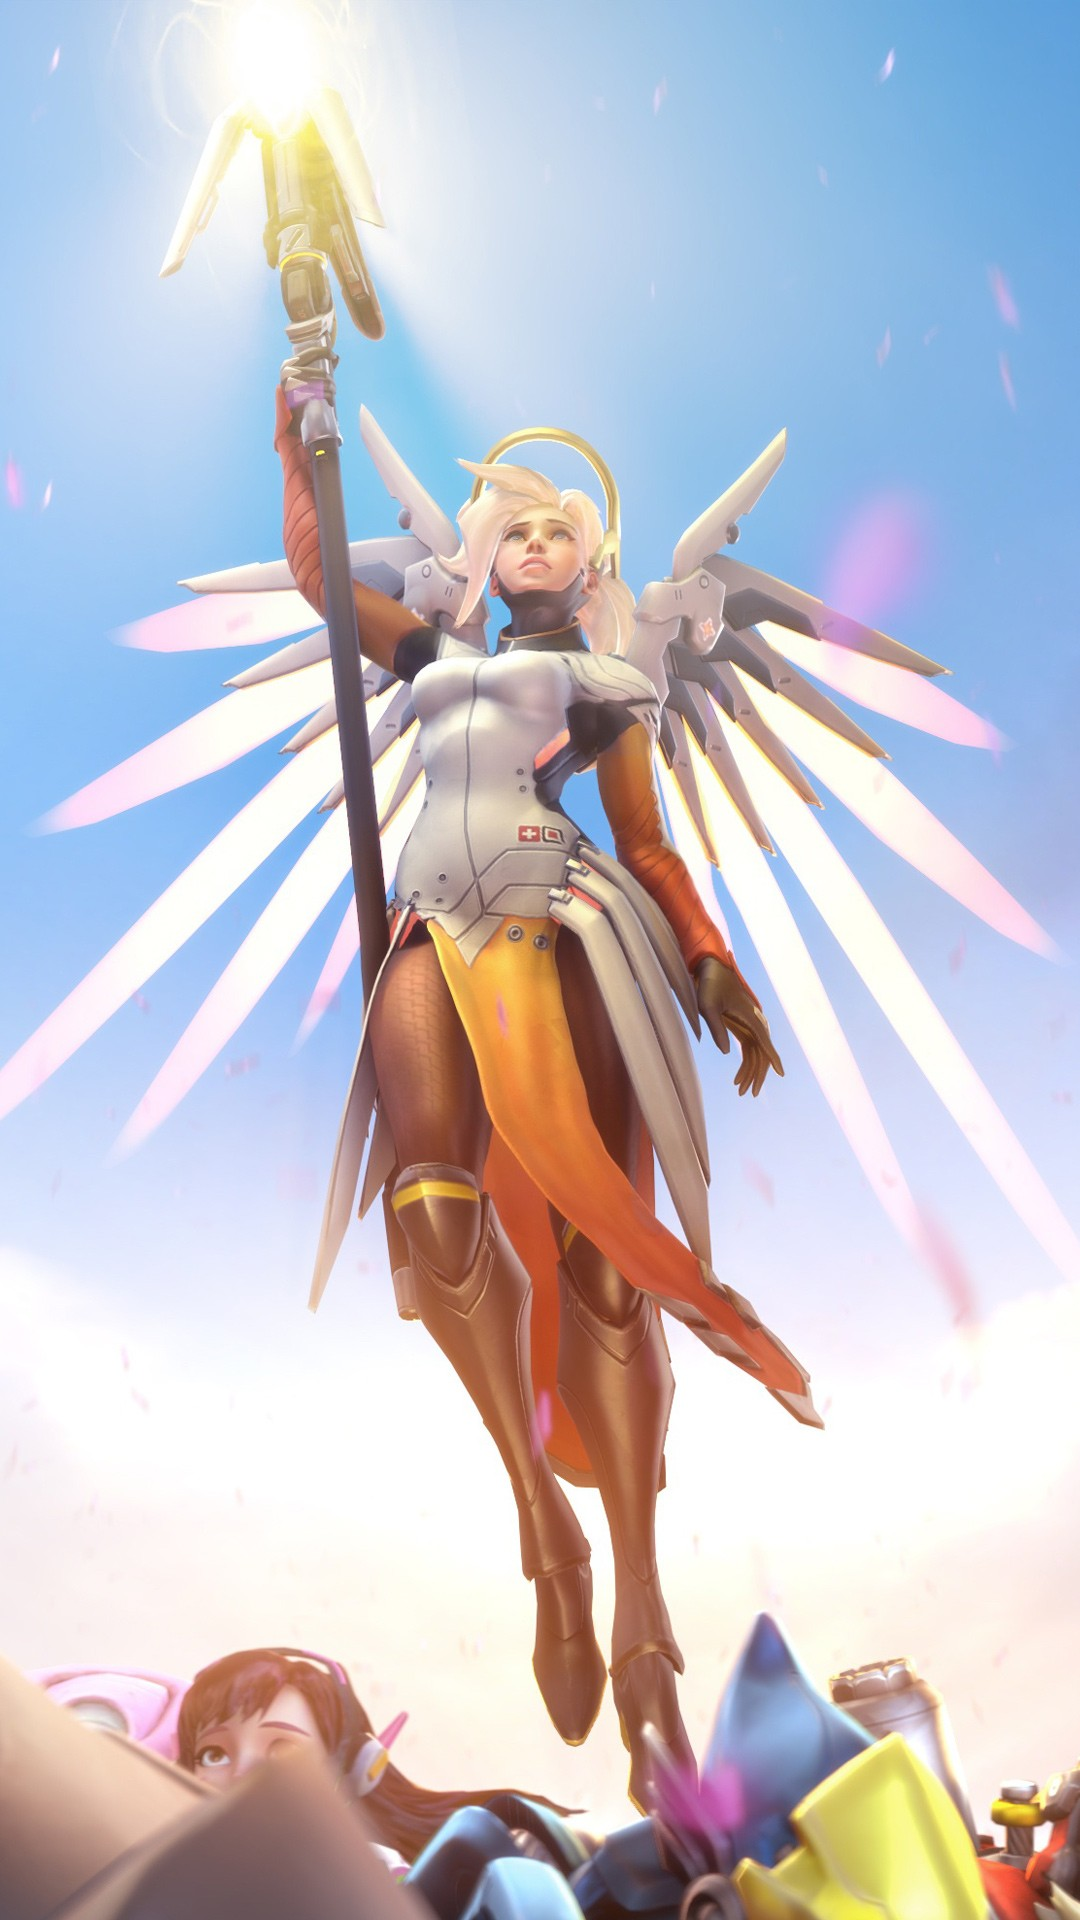 Beautiful Wallpapers For Iphone 6 Plus Overwatch Mercy 4k Wallpapers Hd Wallpapers Id 20446